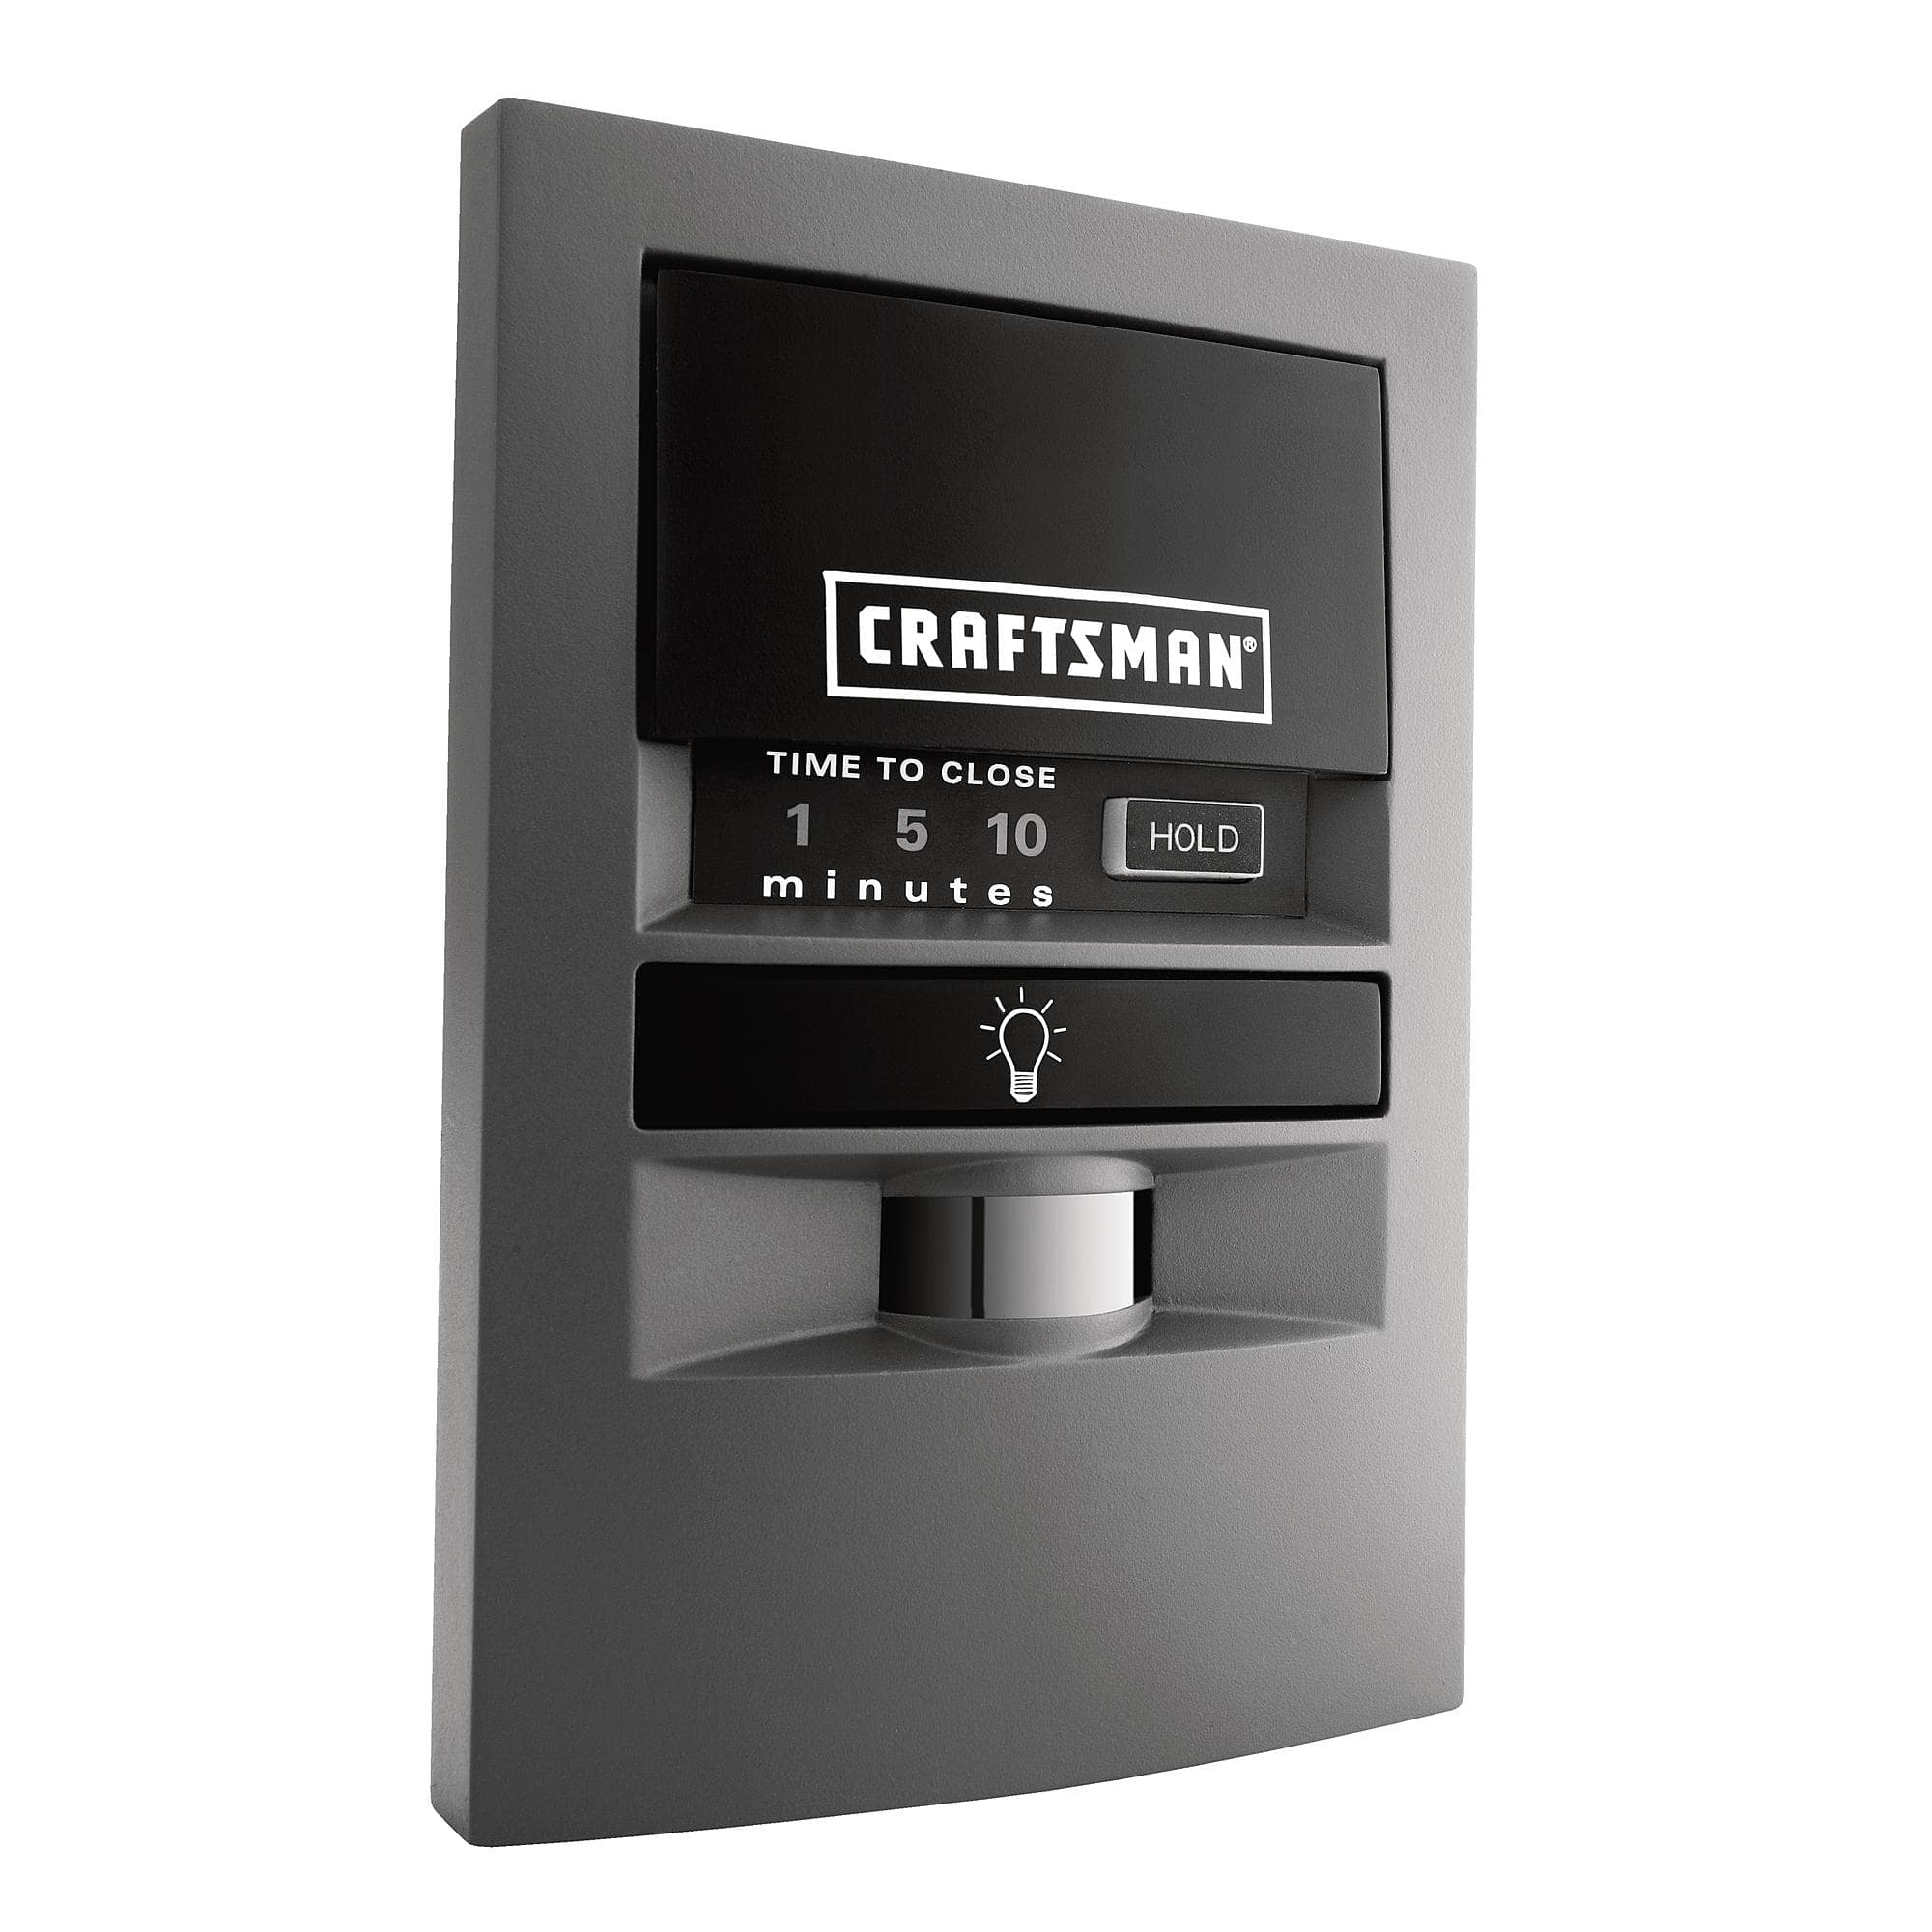 Craftsman 57915 3/4 Horsepower Ultra -Quiet Belt Drive Garage Door Opener with WI-FI Connectivity $179.99 with $54 in points @Sears